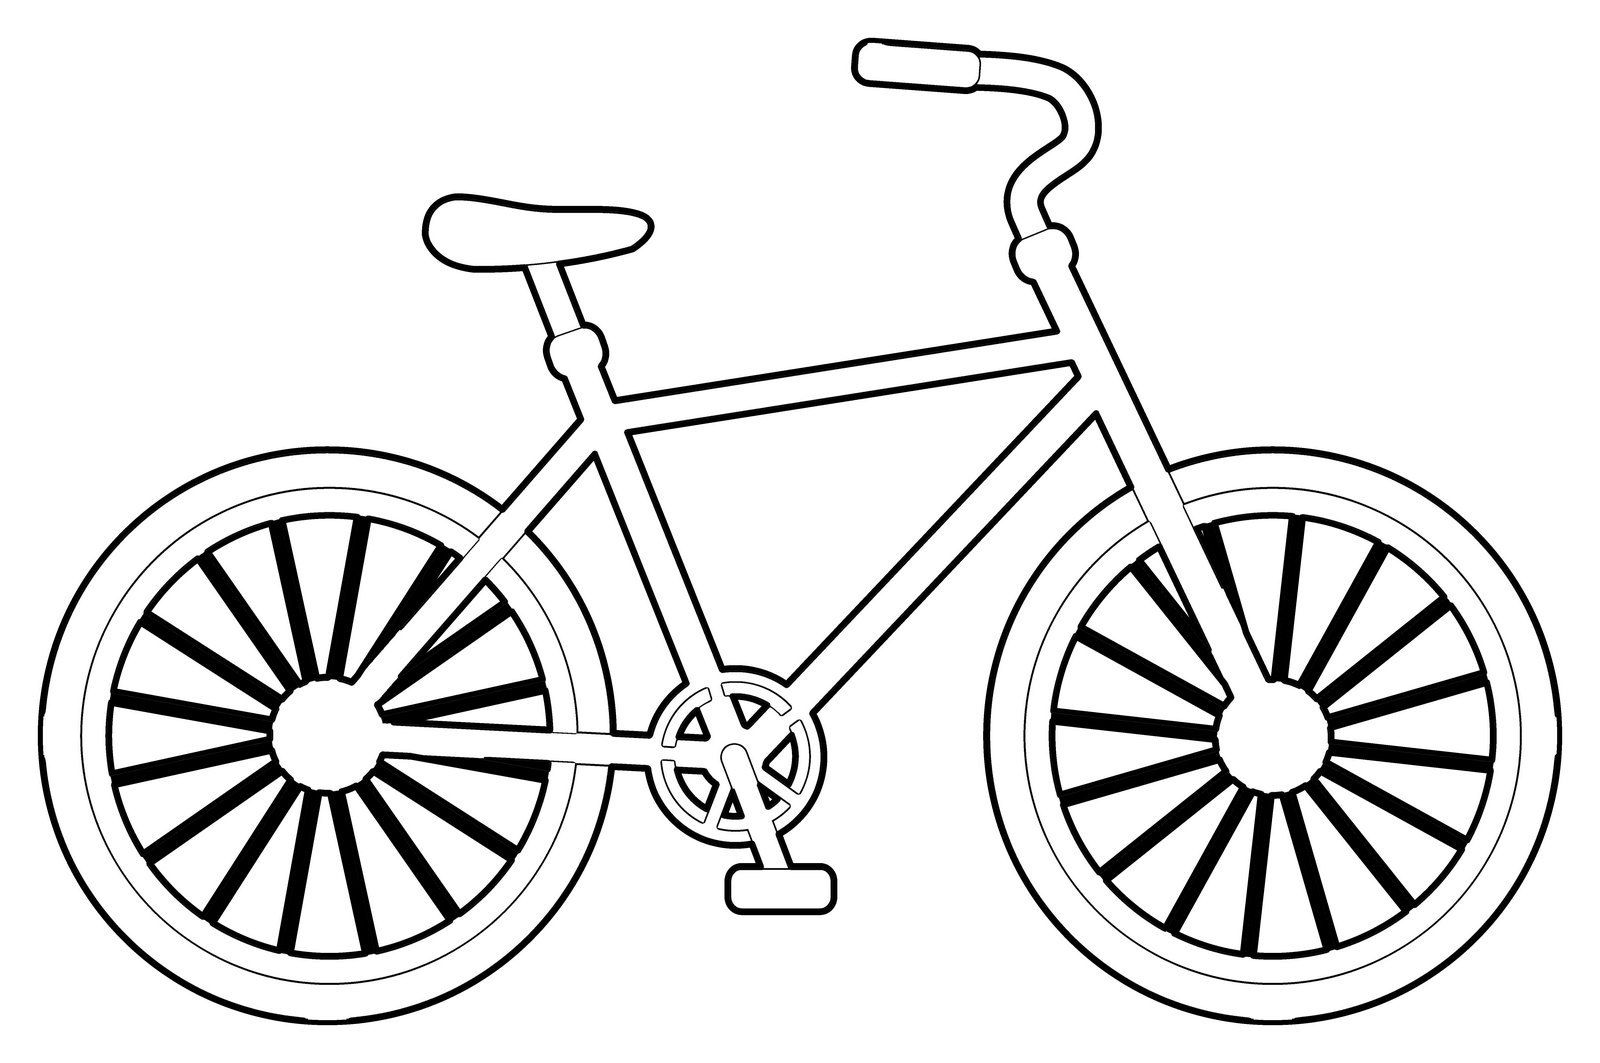 Bicyle Riding Coloring Page For Kids Coloring Pages Cool Coloring Pages Pumpkin Coloring Pages